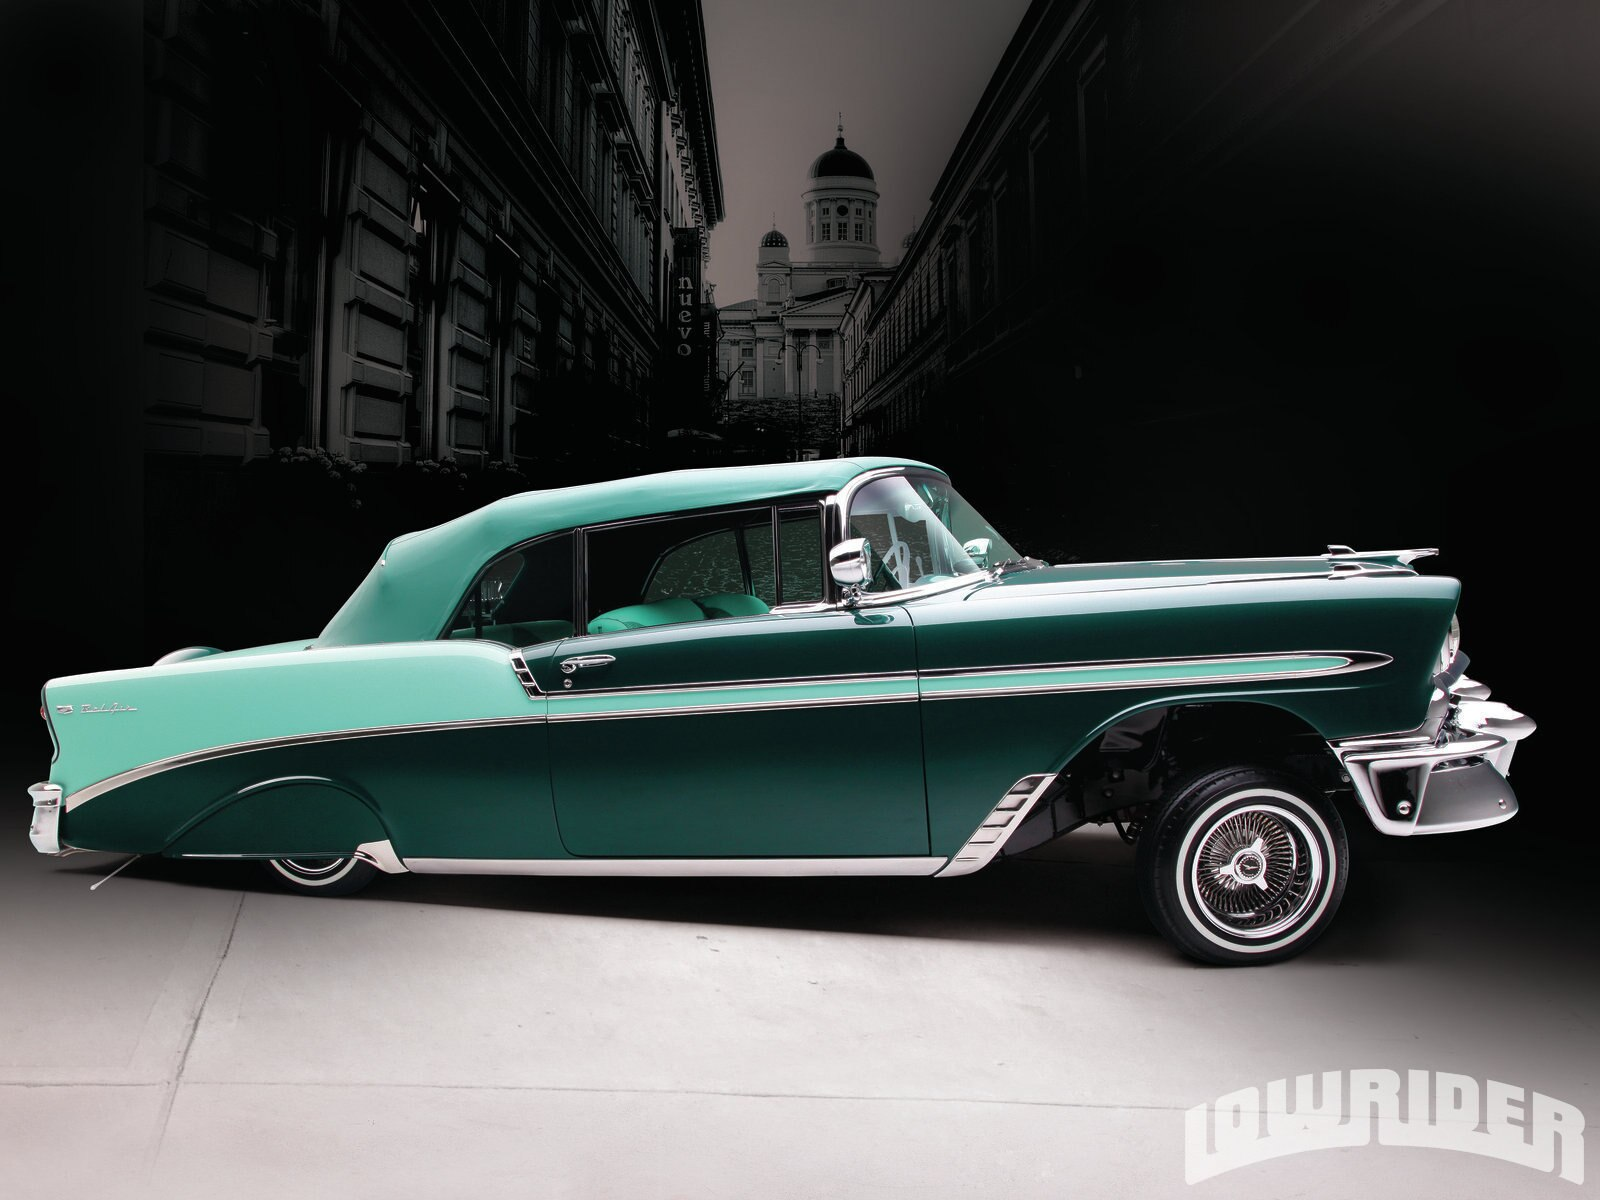 1304-lrmp-10-o-1956-chevy-bel-air-convertible-right-side-view1